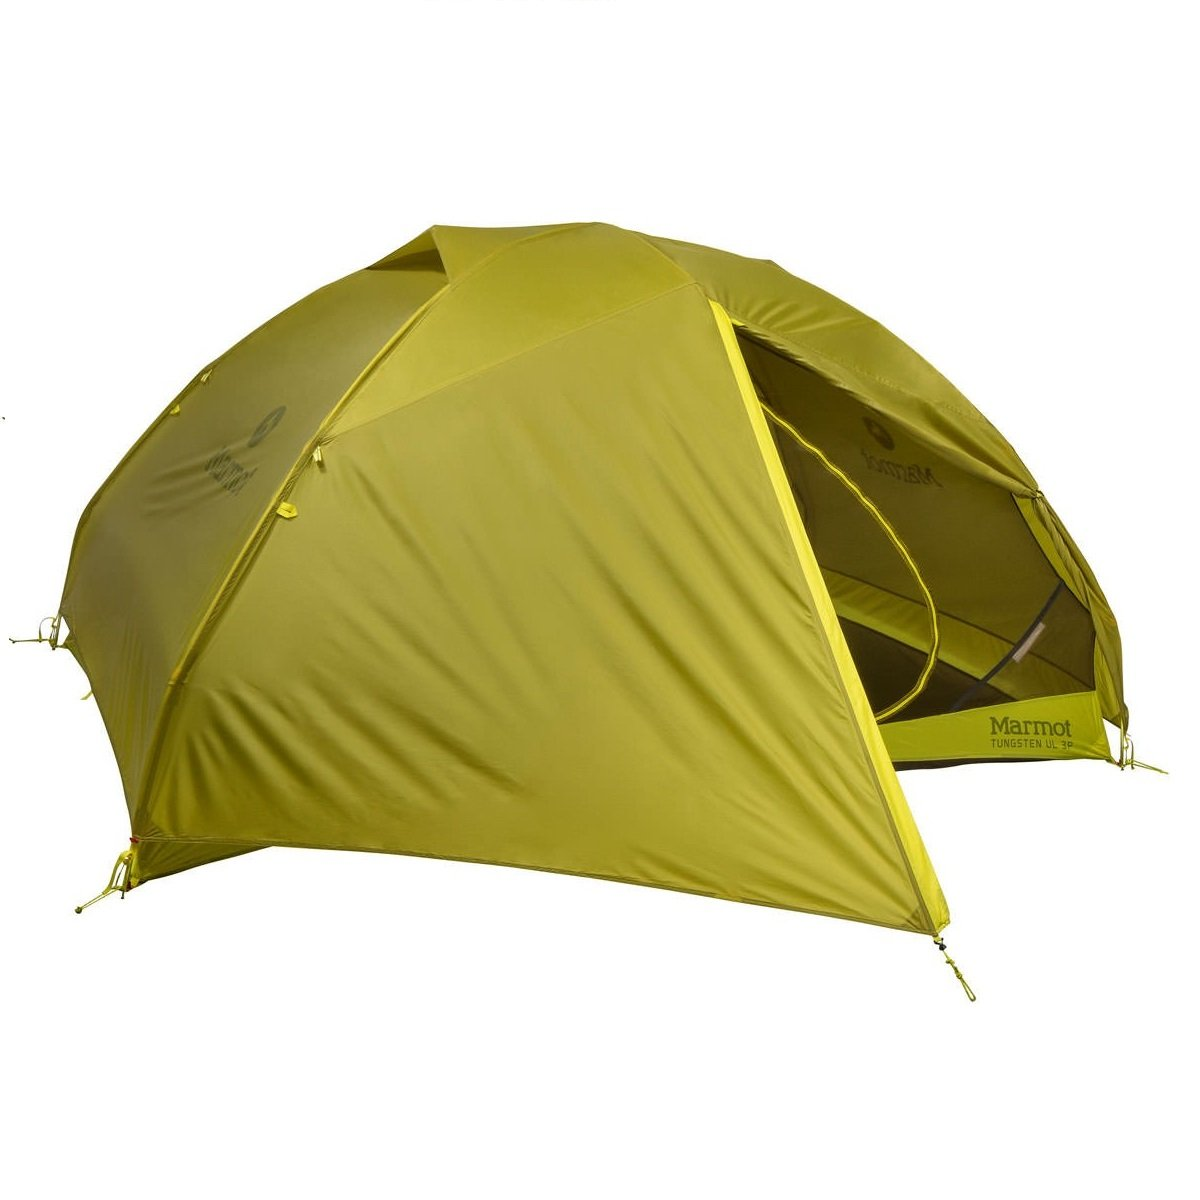 Marmot Tungsten UL 3P Tent ...  sc 1 st  Outdoors Geek & Marmot Tungsten UL 3P Tent (New) - Outdoors Geek